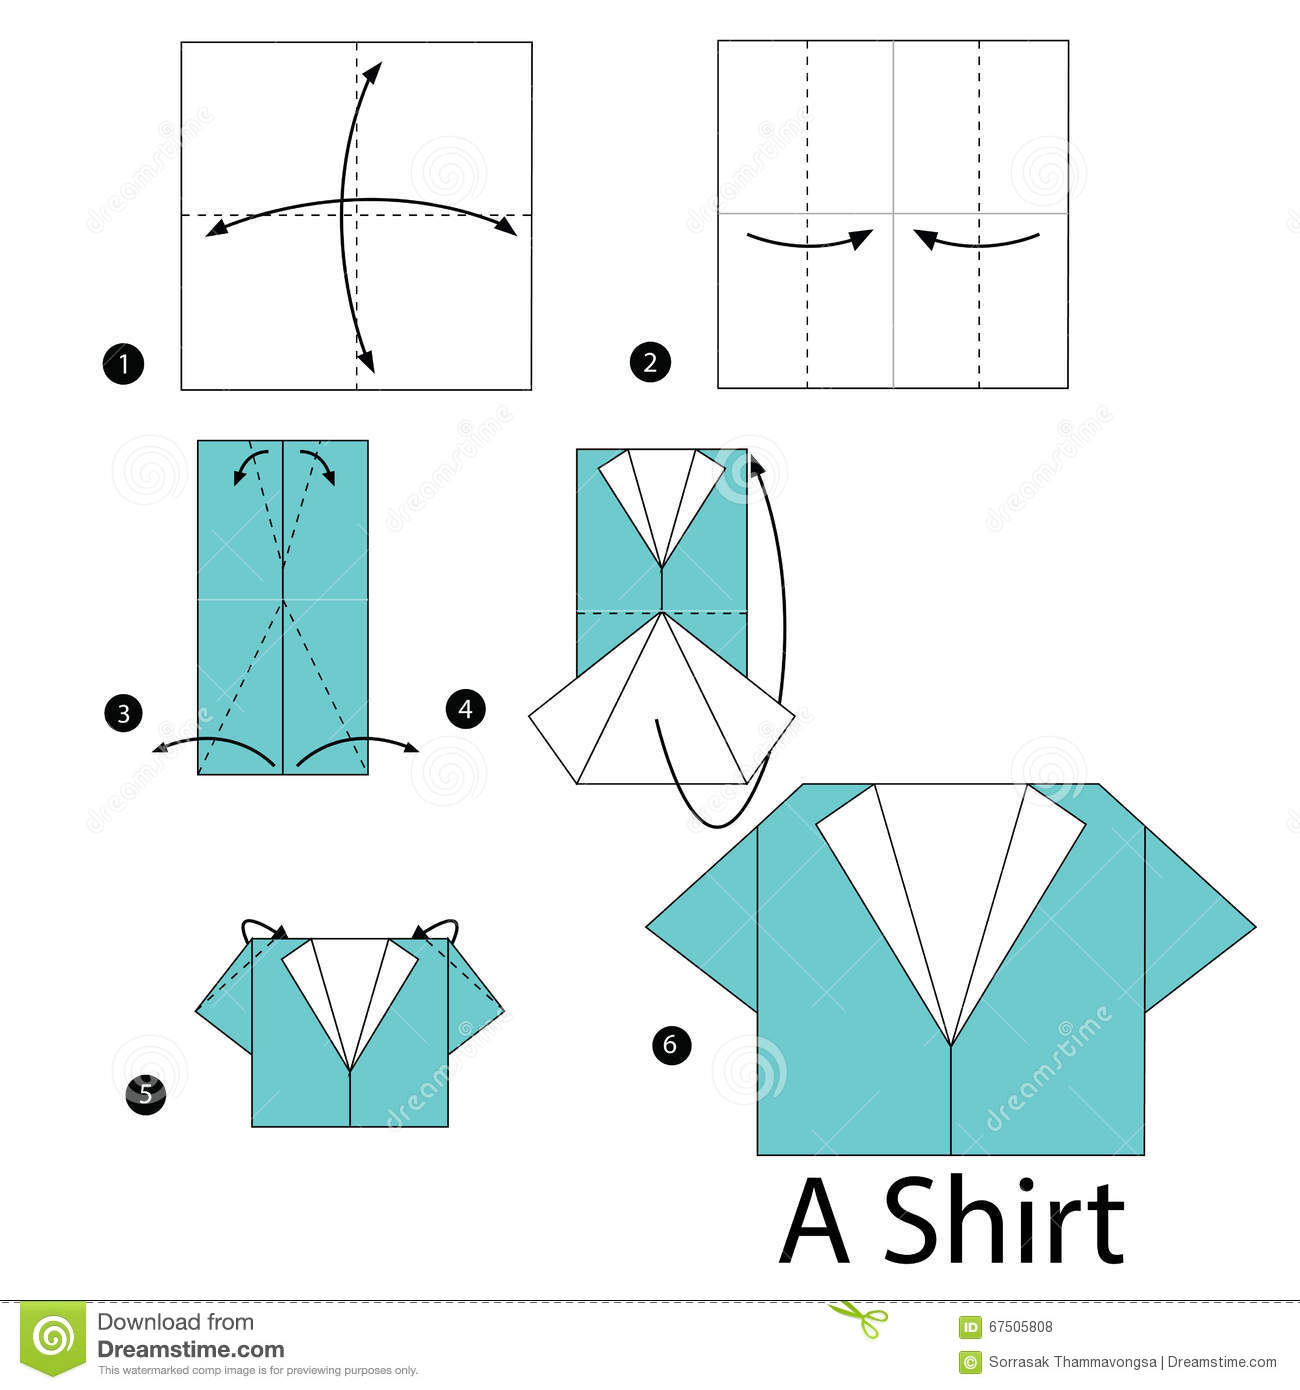 Money Origami Shirt and Tie Folding Instructions | 1390x1300